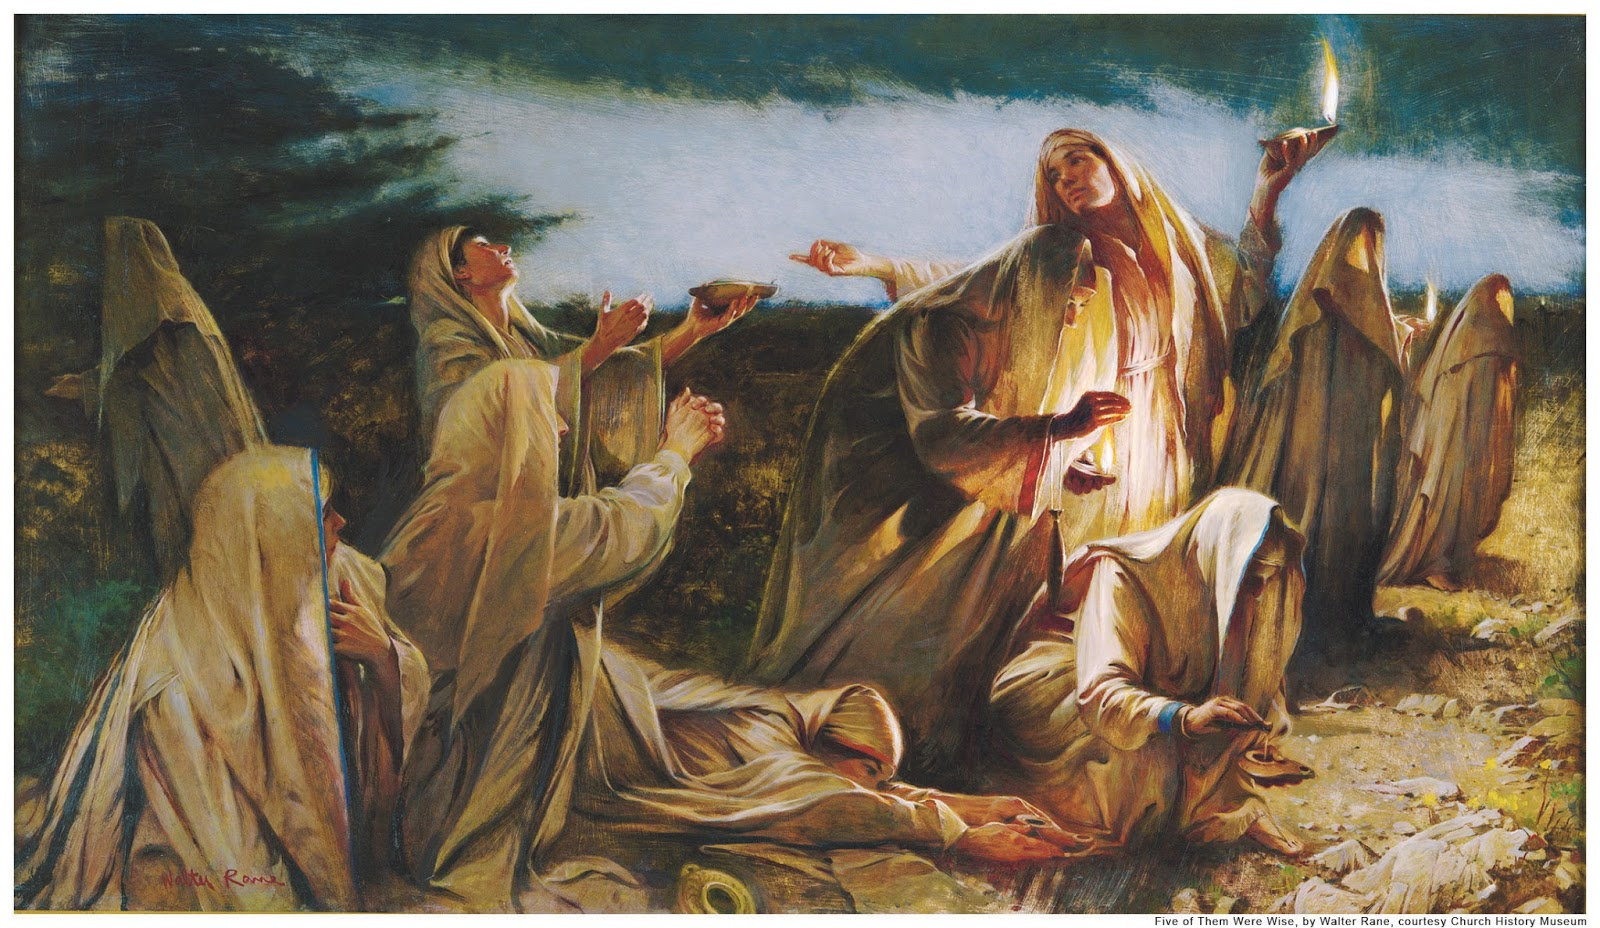 Five of Them Were Wise, Walter Rane courtesy Church History Museum